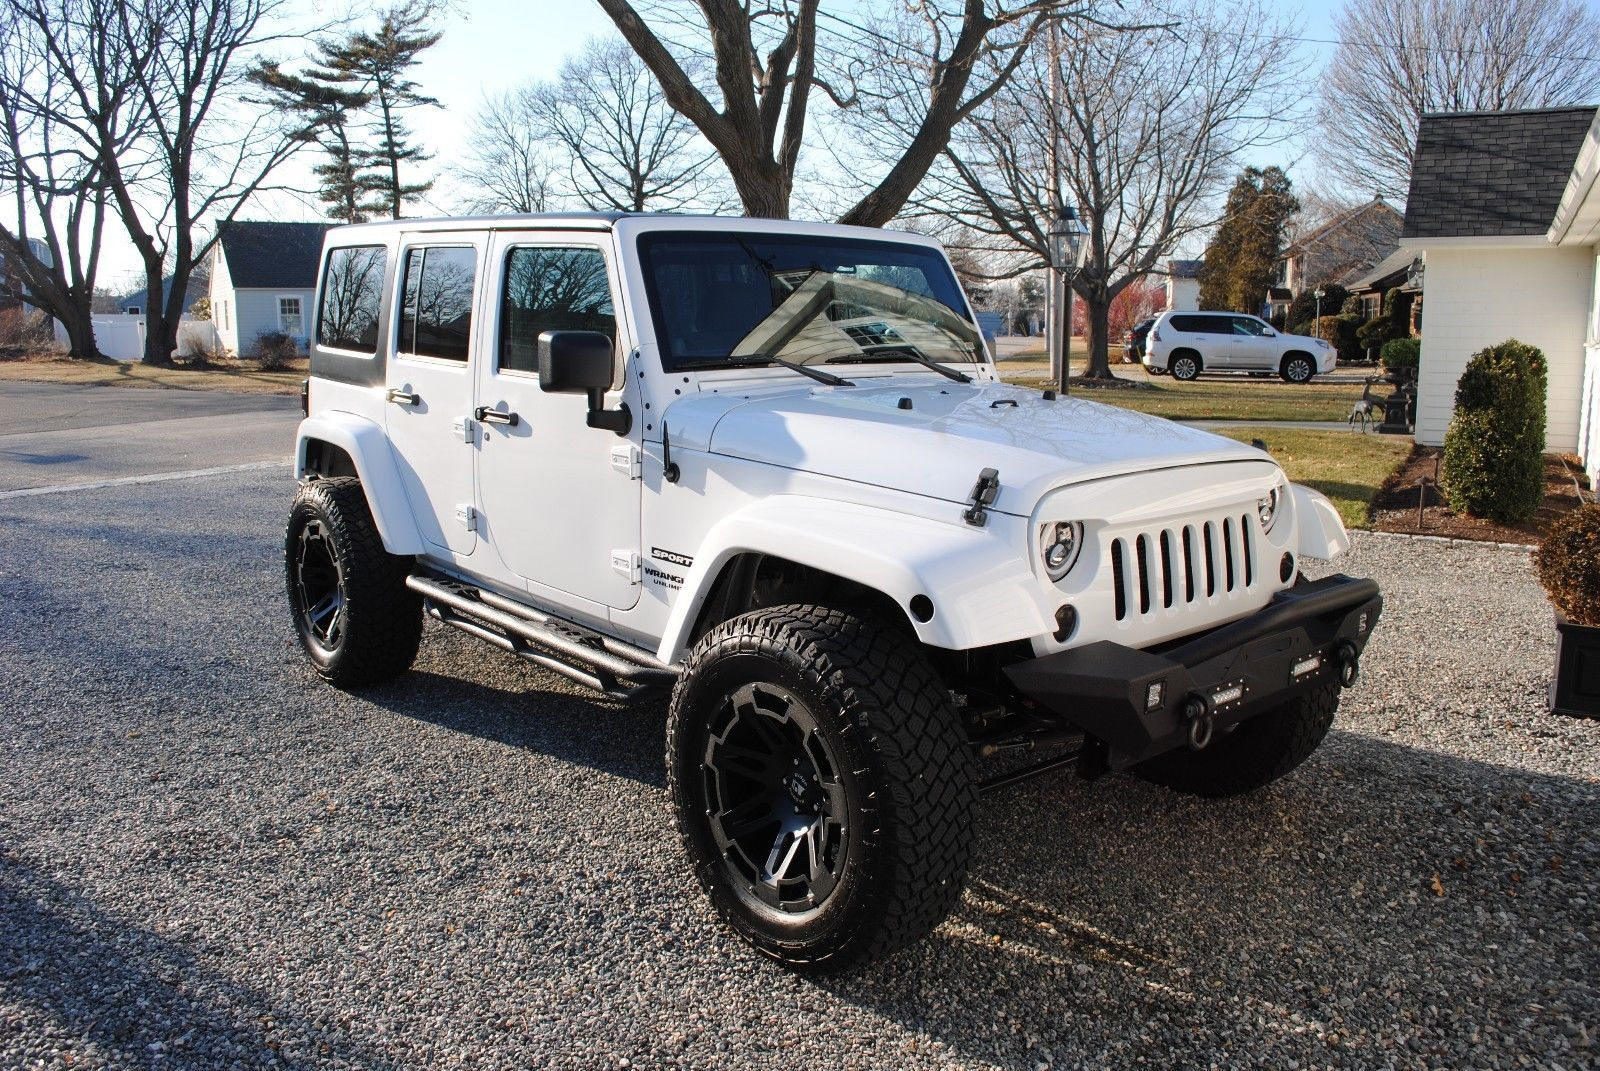 Ebay 2012 Jeep Wrangler Unlimited Sport 2012 Wrangler Jk White Lifted 35 Tires Very Clea Wrangler Unlimited Sport 2012 Jeep Wrangler Jeep Wrangler Unlimited